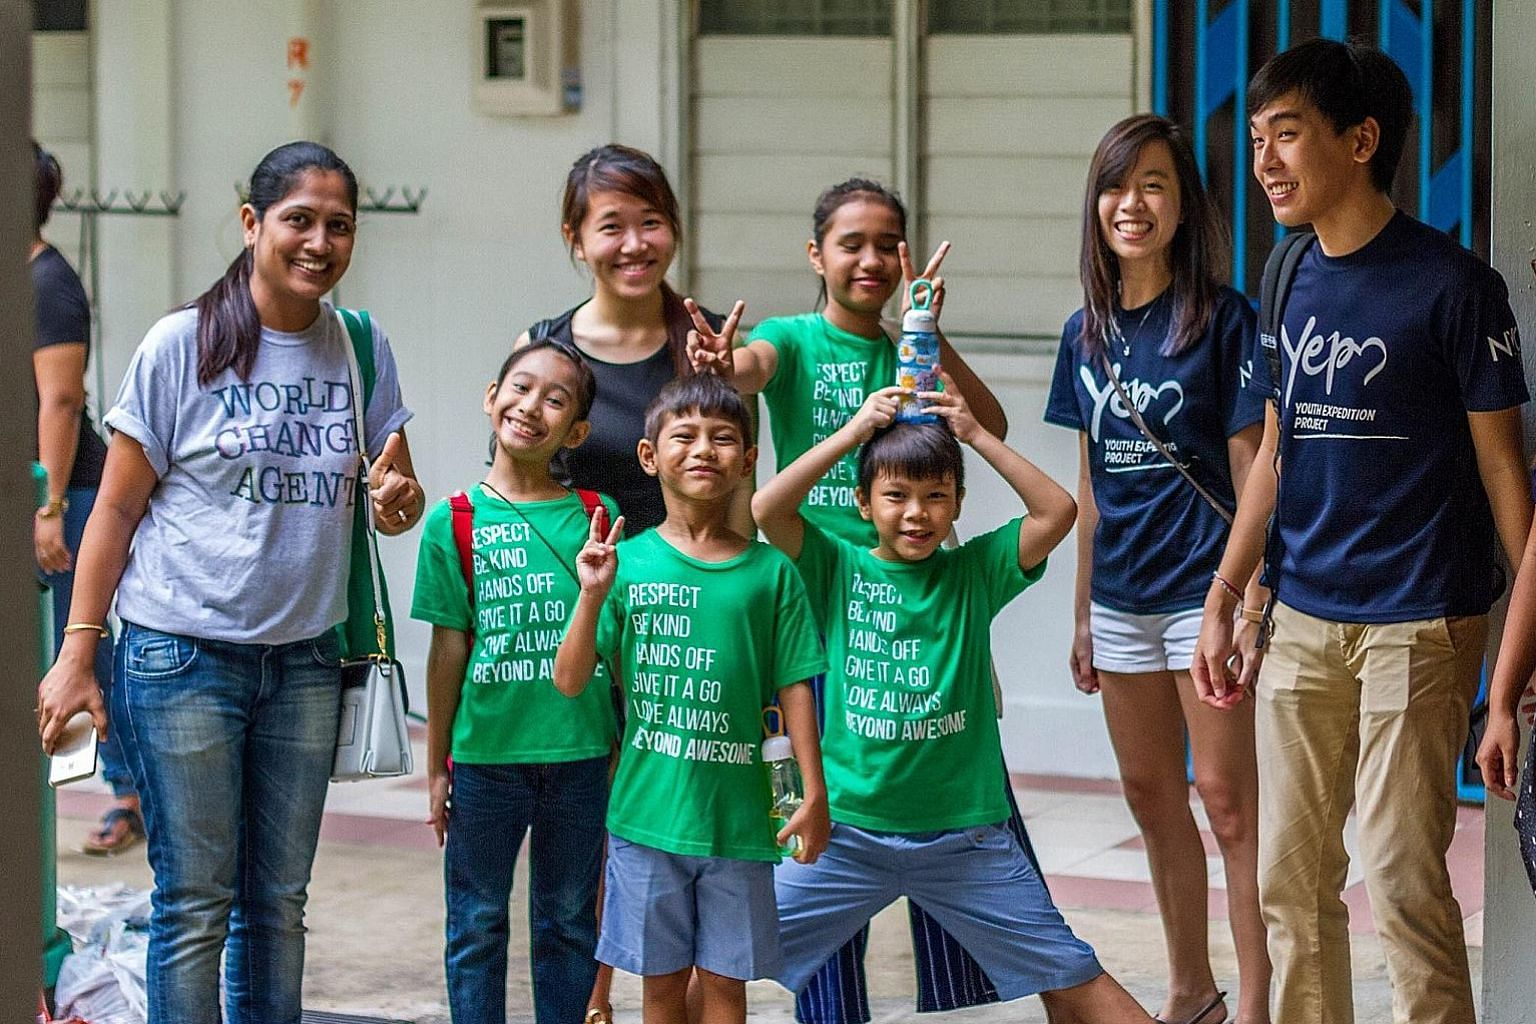 Beyond Awesome volunteers are cheerleaders to the at-risk and underprivileged children who attend the programme, says founder Emily Teng.